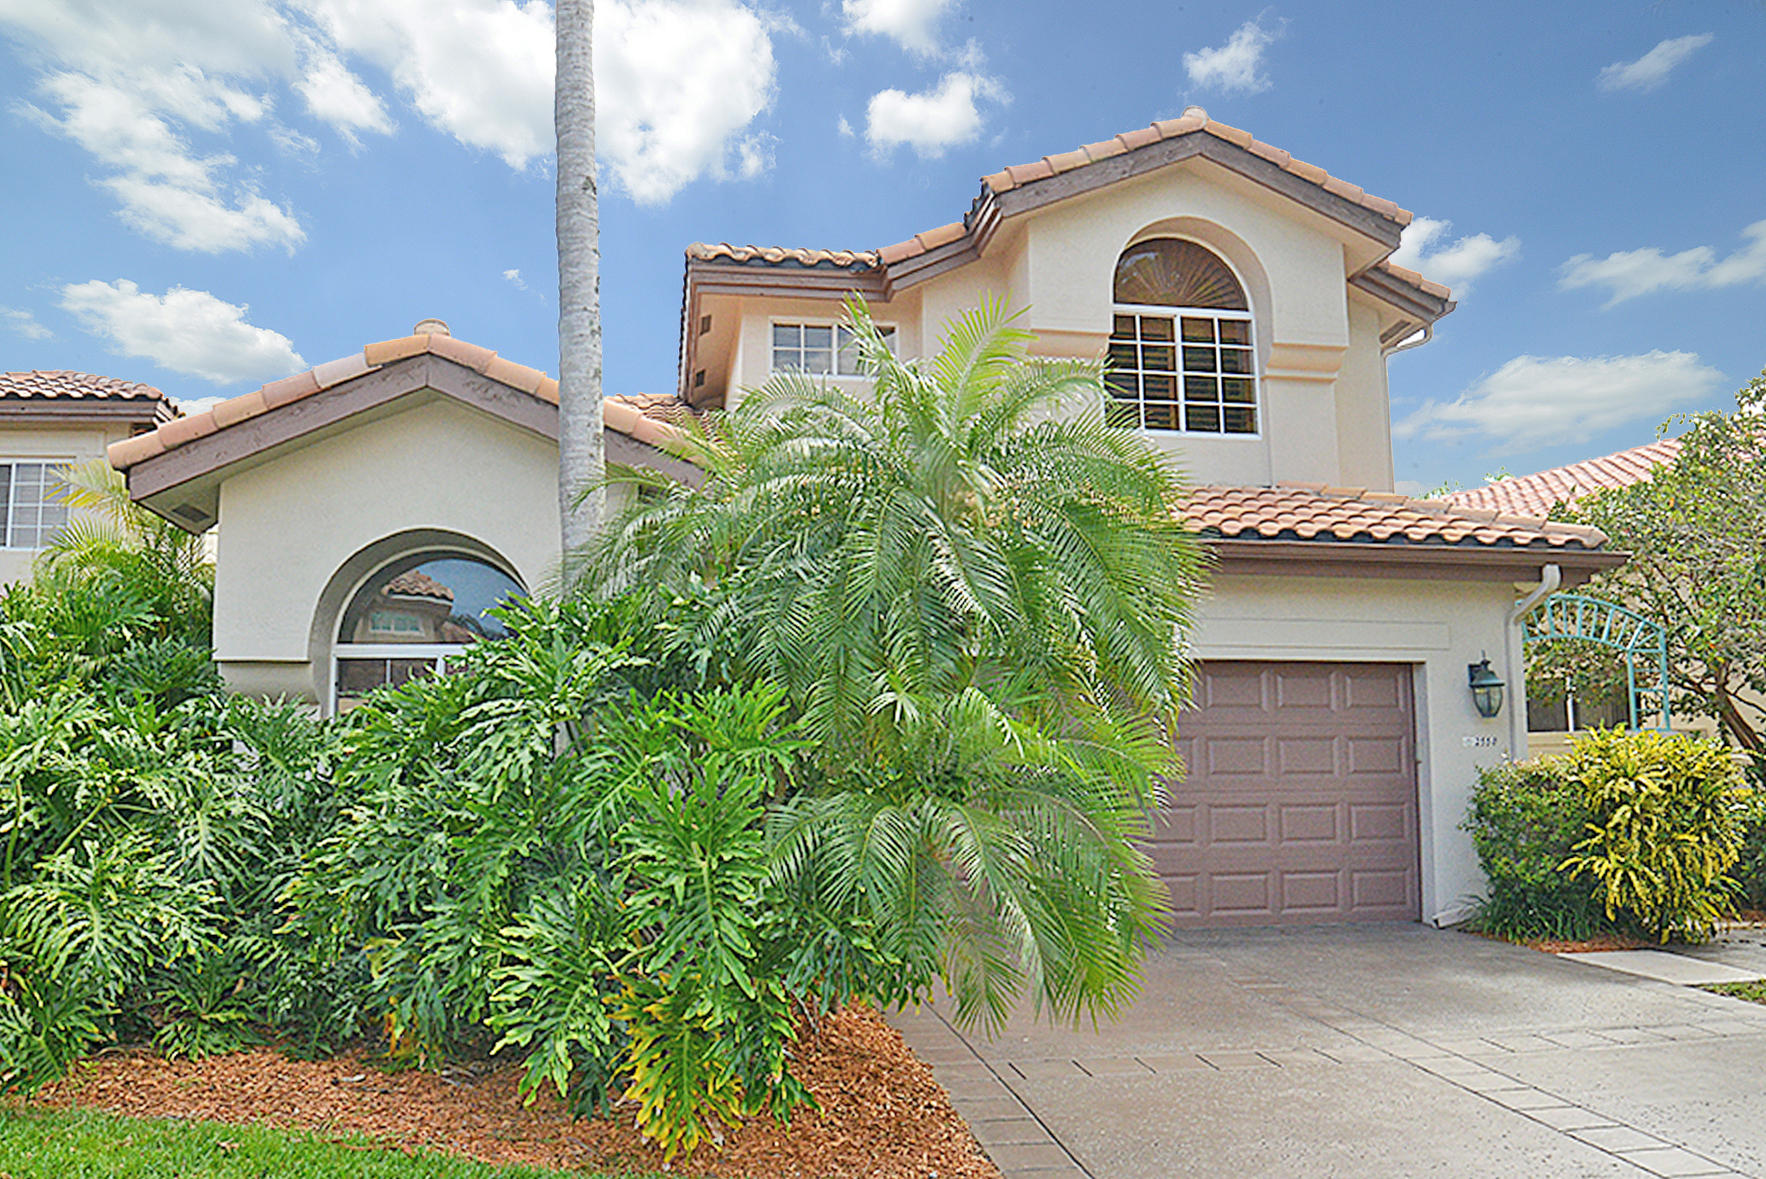 Details for 2558 52nd Street Nw, Boca Raton, FL 33496